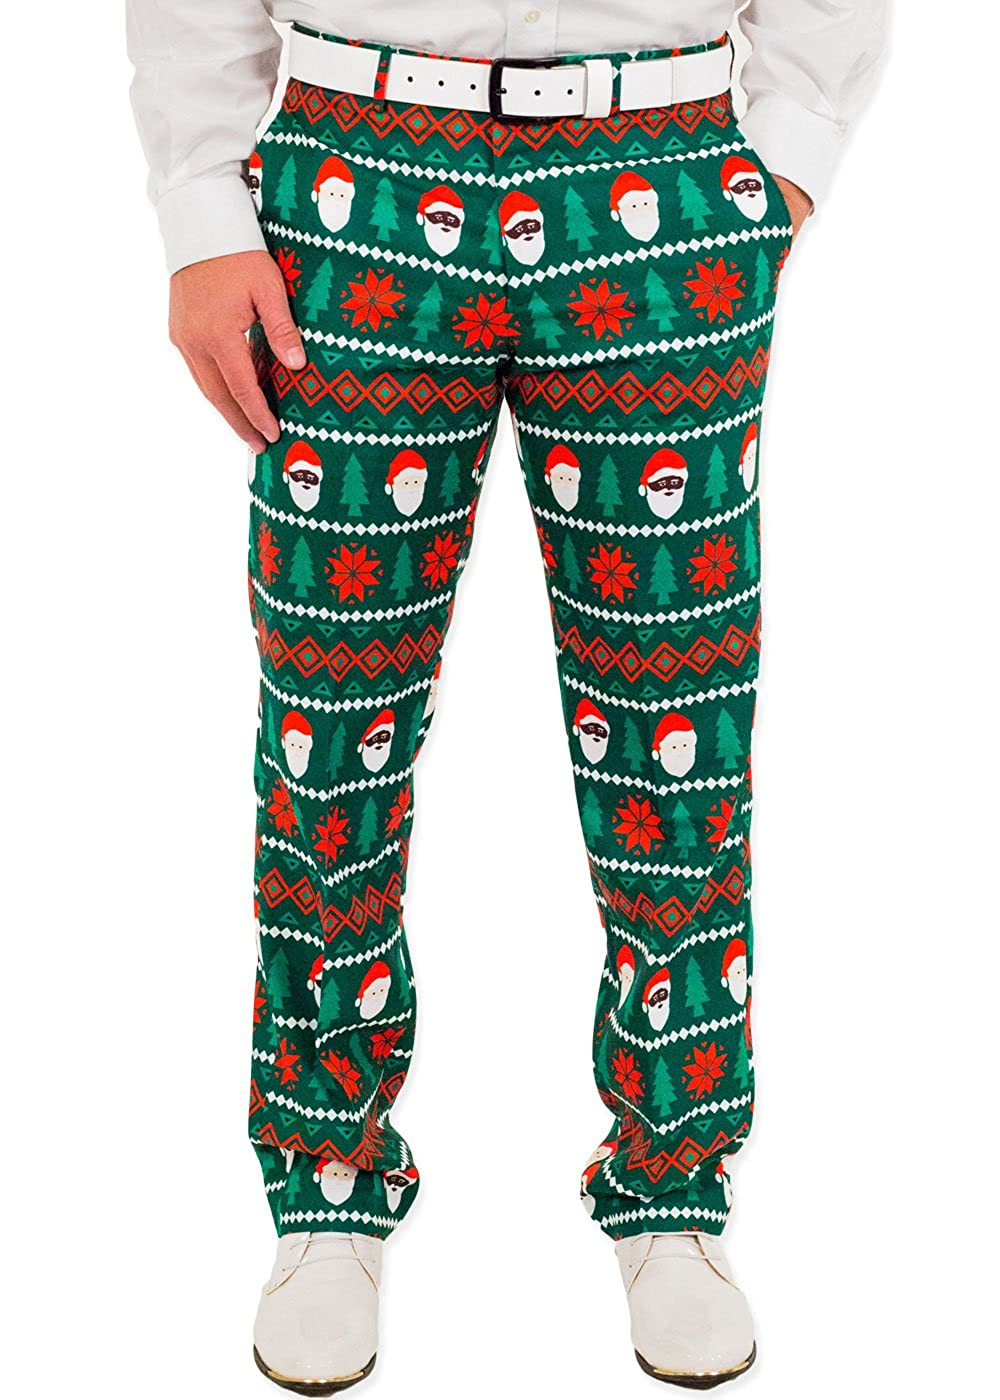 Festified Men's Holiday Santa Equality Christmas Suit Pants in Green by